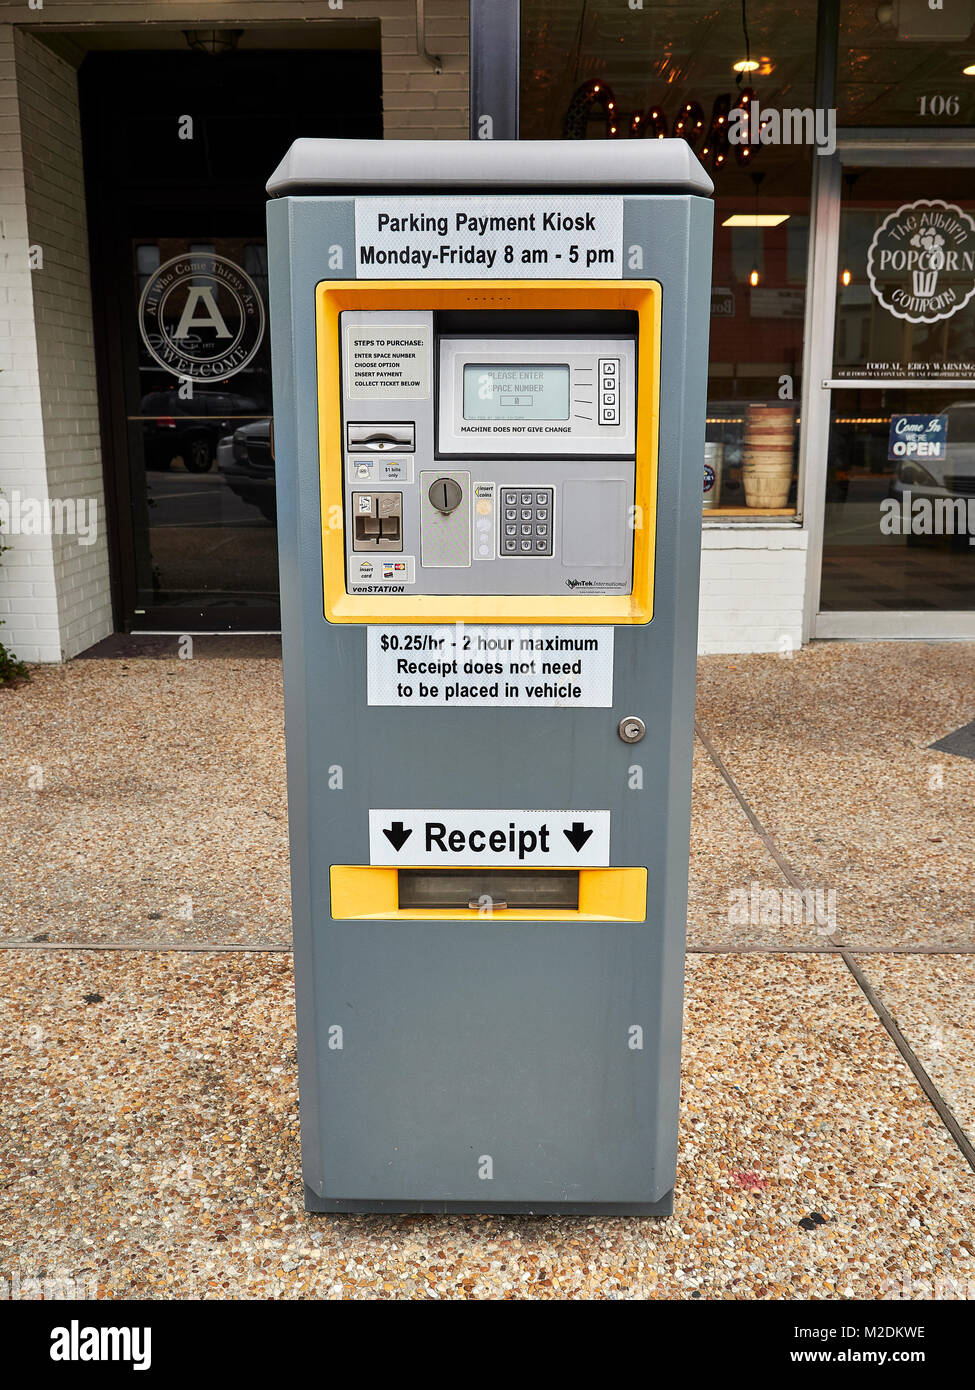 Parking payment kiosk or parking meter, on a city street, used to pay for street parking in Auburn Alabama, USA. - Stock Image